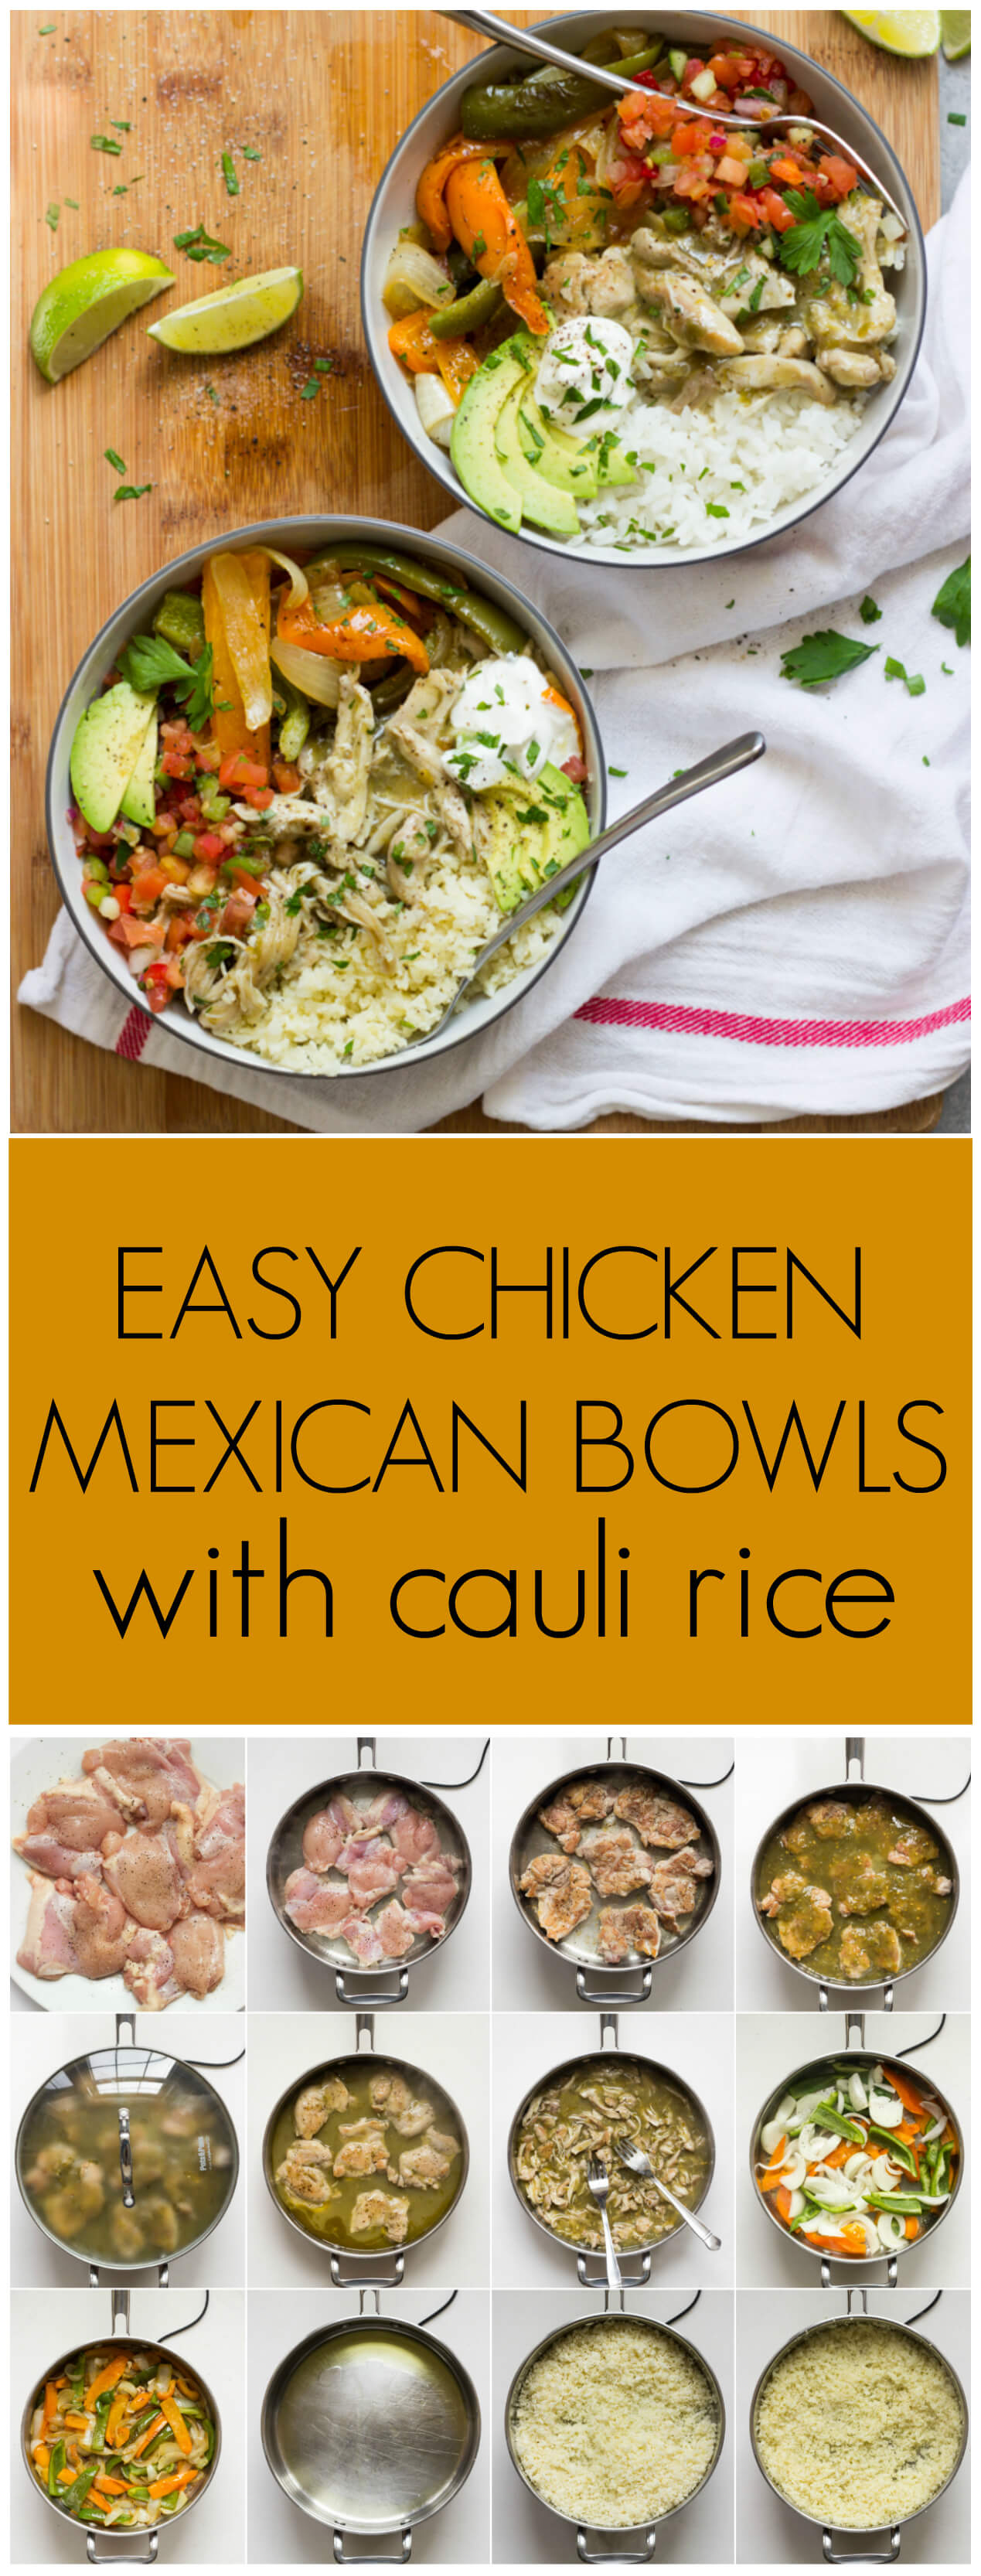 Easy chicken mexican bowls 2 ways easy chicken mexican bowls 2 ways easy skillet shredded chicken served over forumfinder Gallery